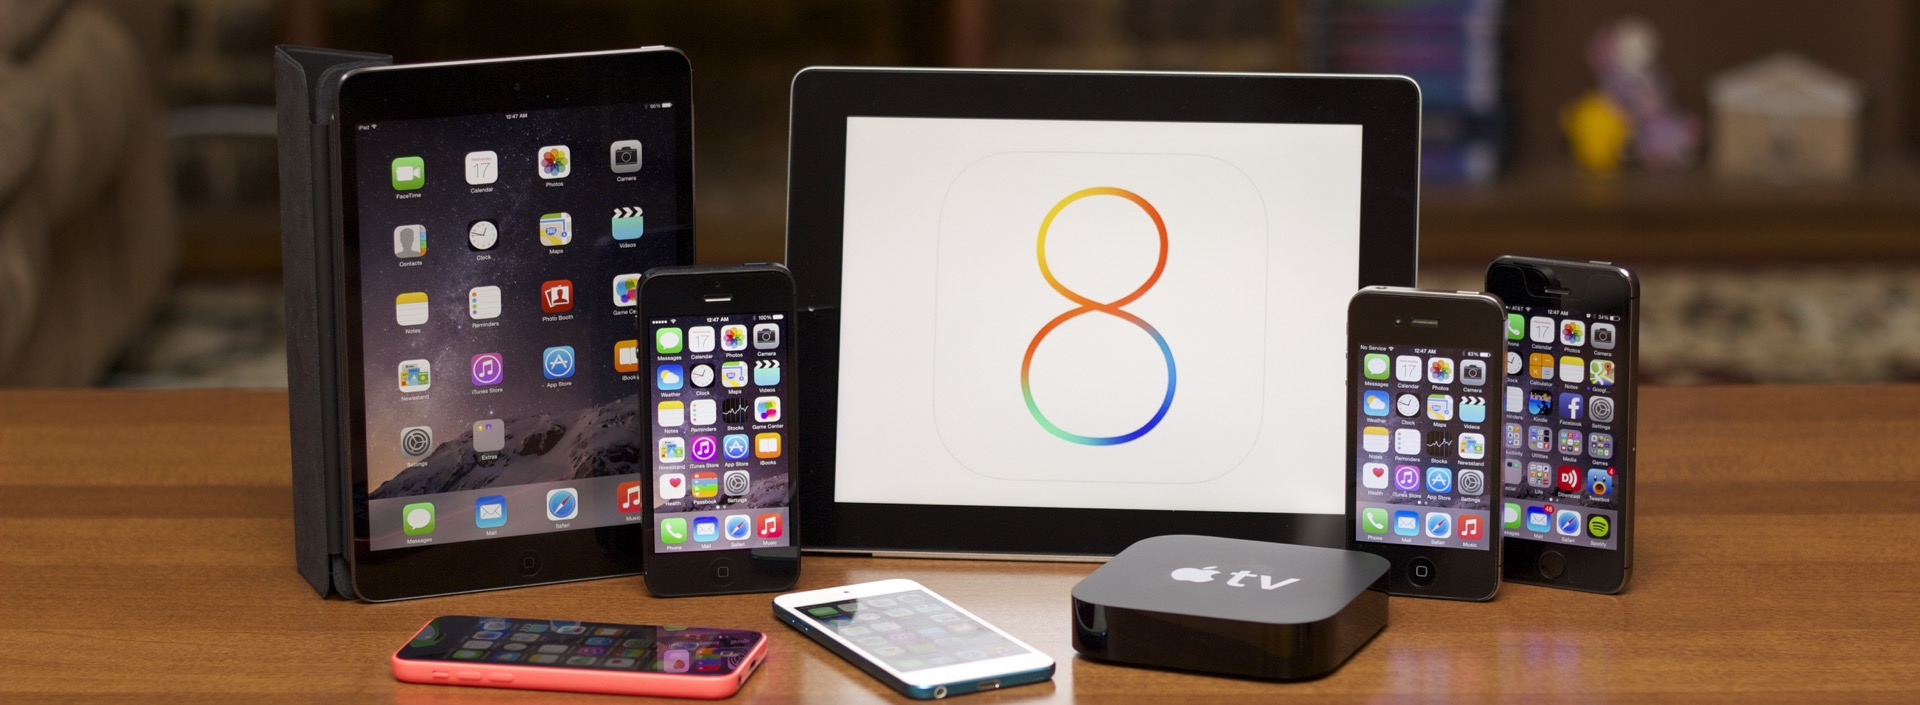 If the rumors are true, iOS 9 could run on (and speed up) everything that currently runs iOS 8.